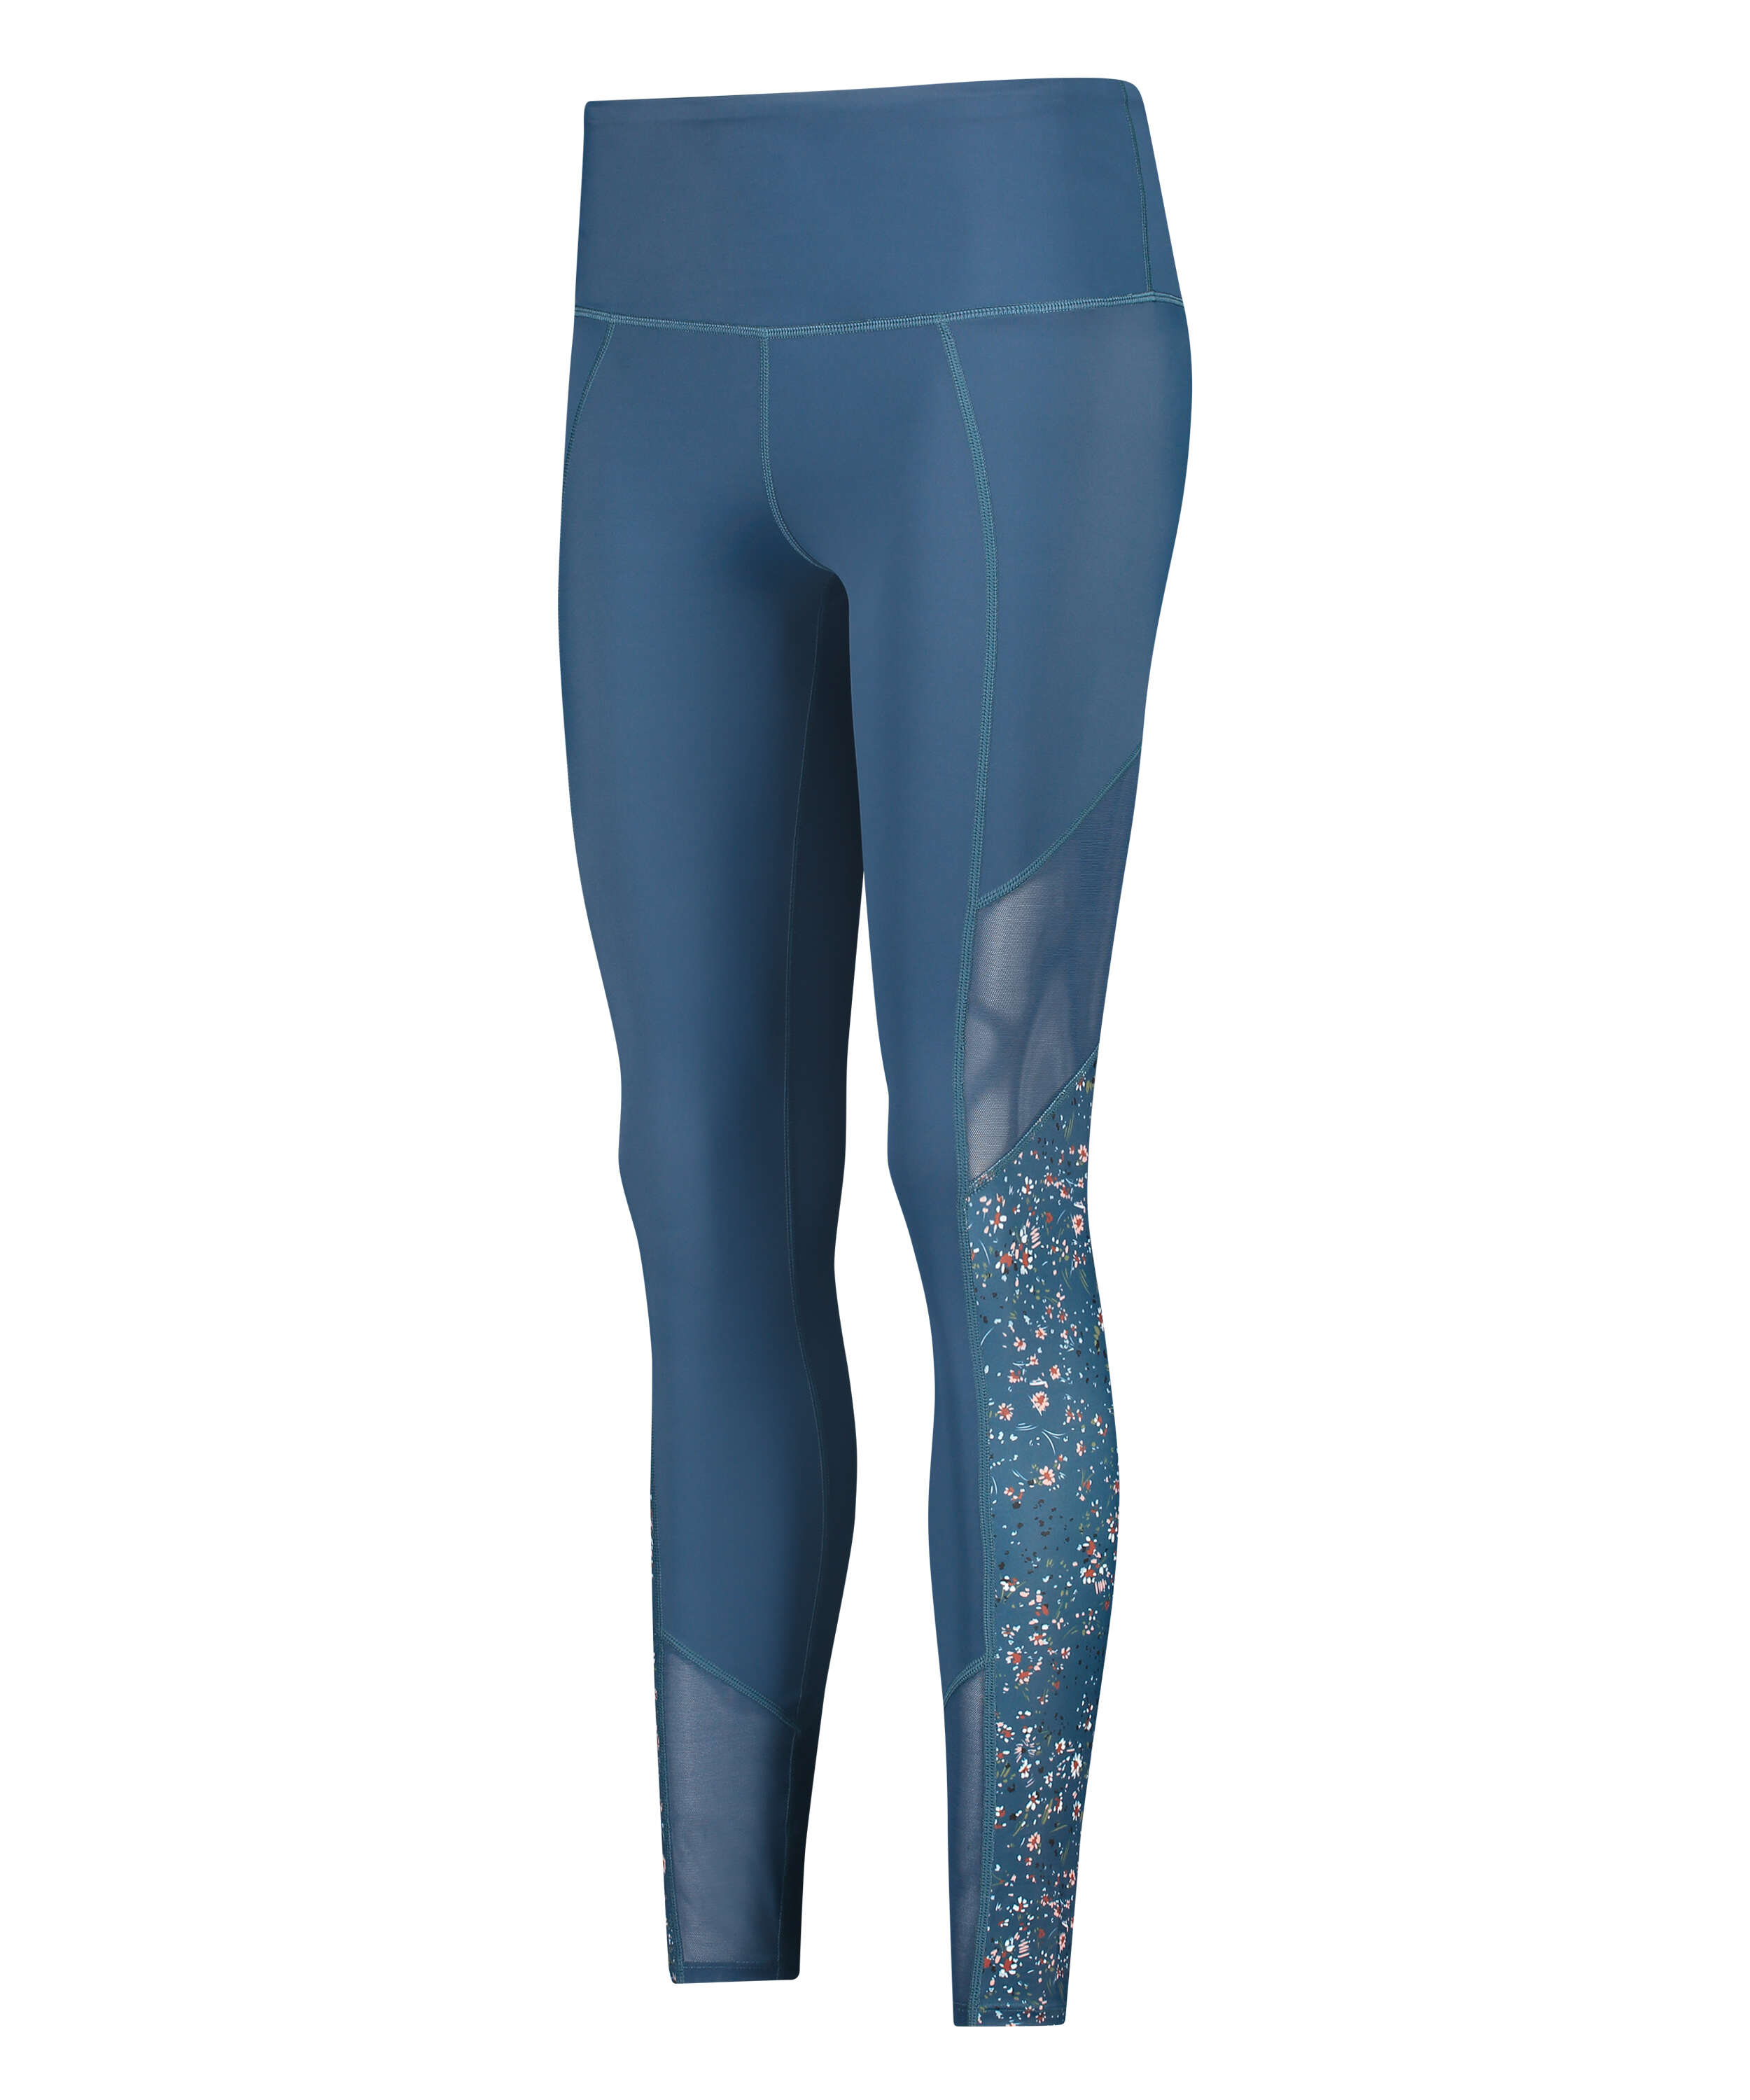 HKMX high waisted sport leggings, Blue, main